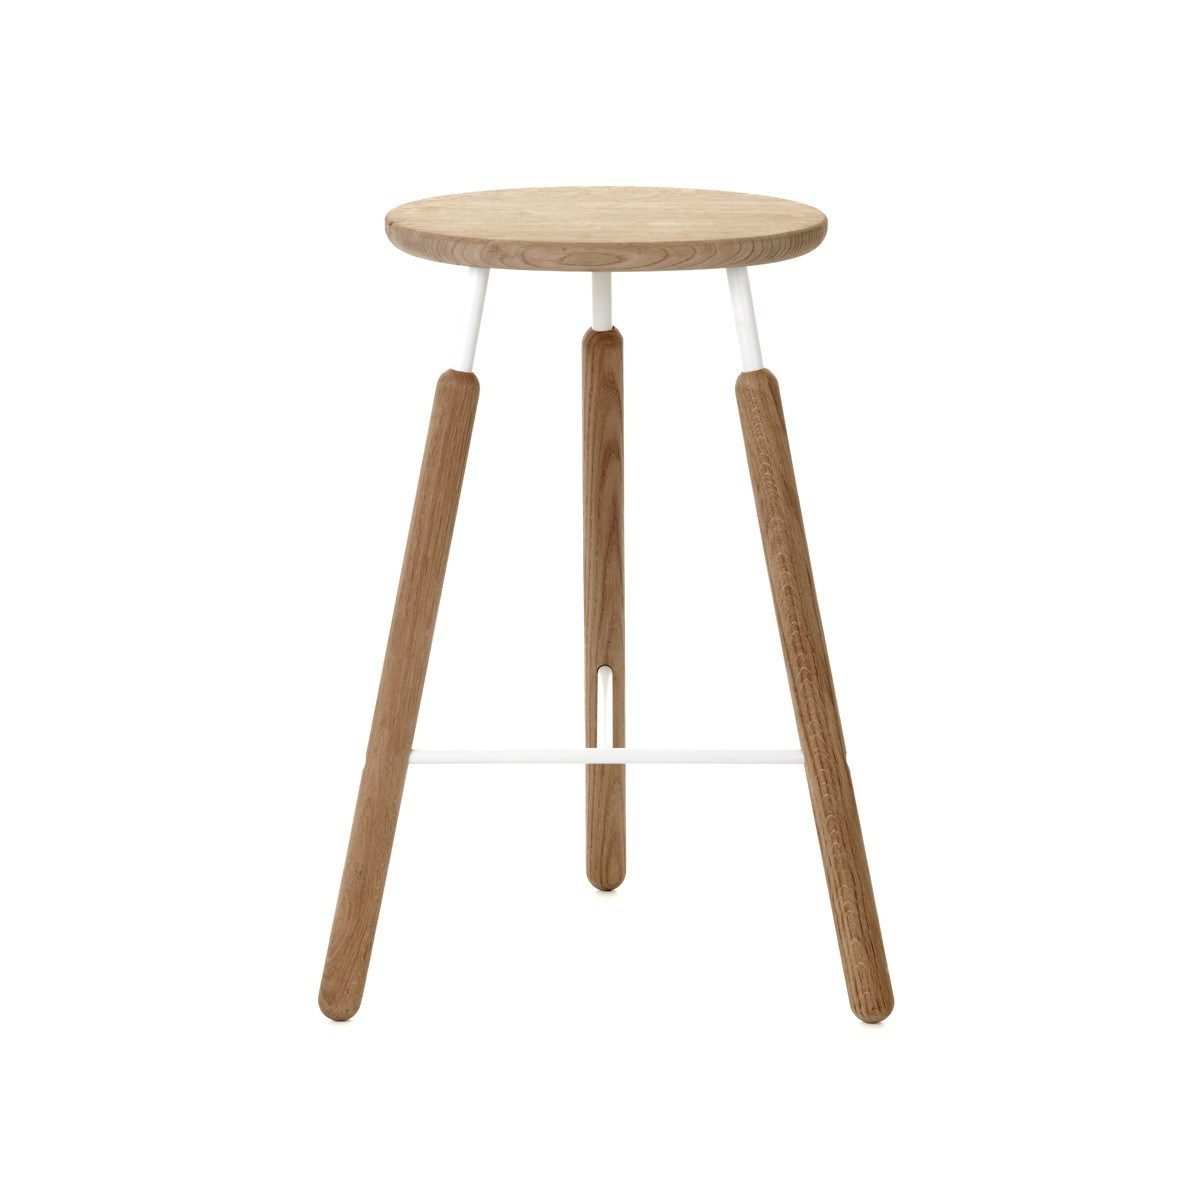 &TRADITION RAFT BAR STOOL - Eclectic Cool  - 2